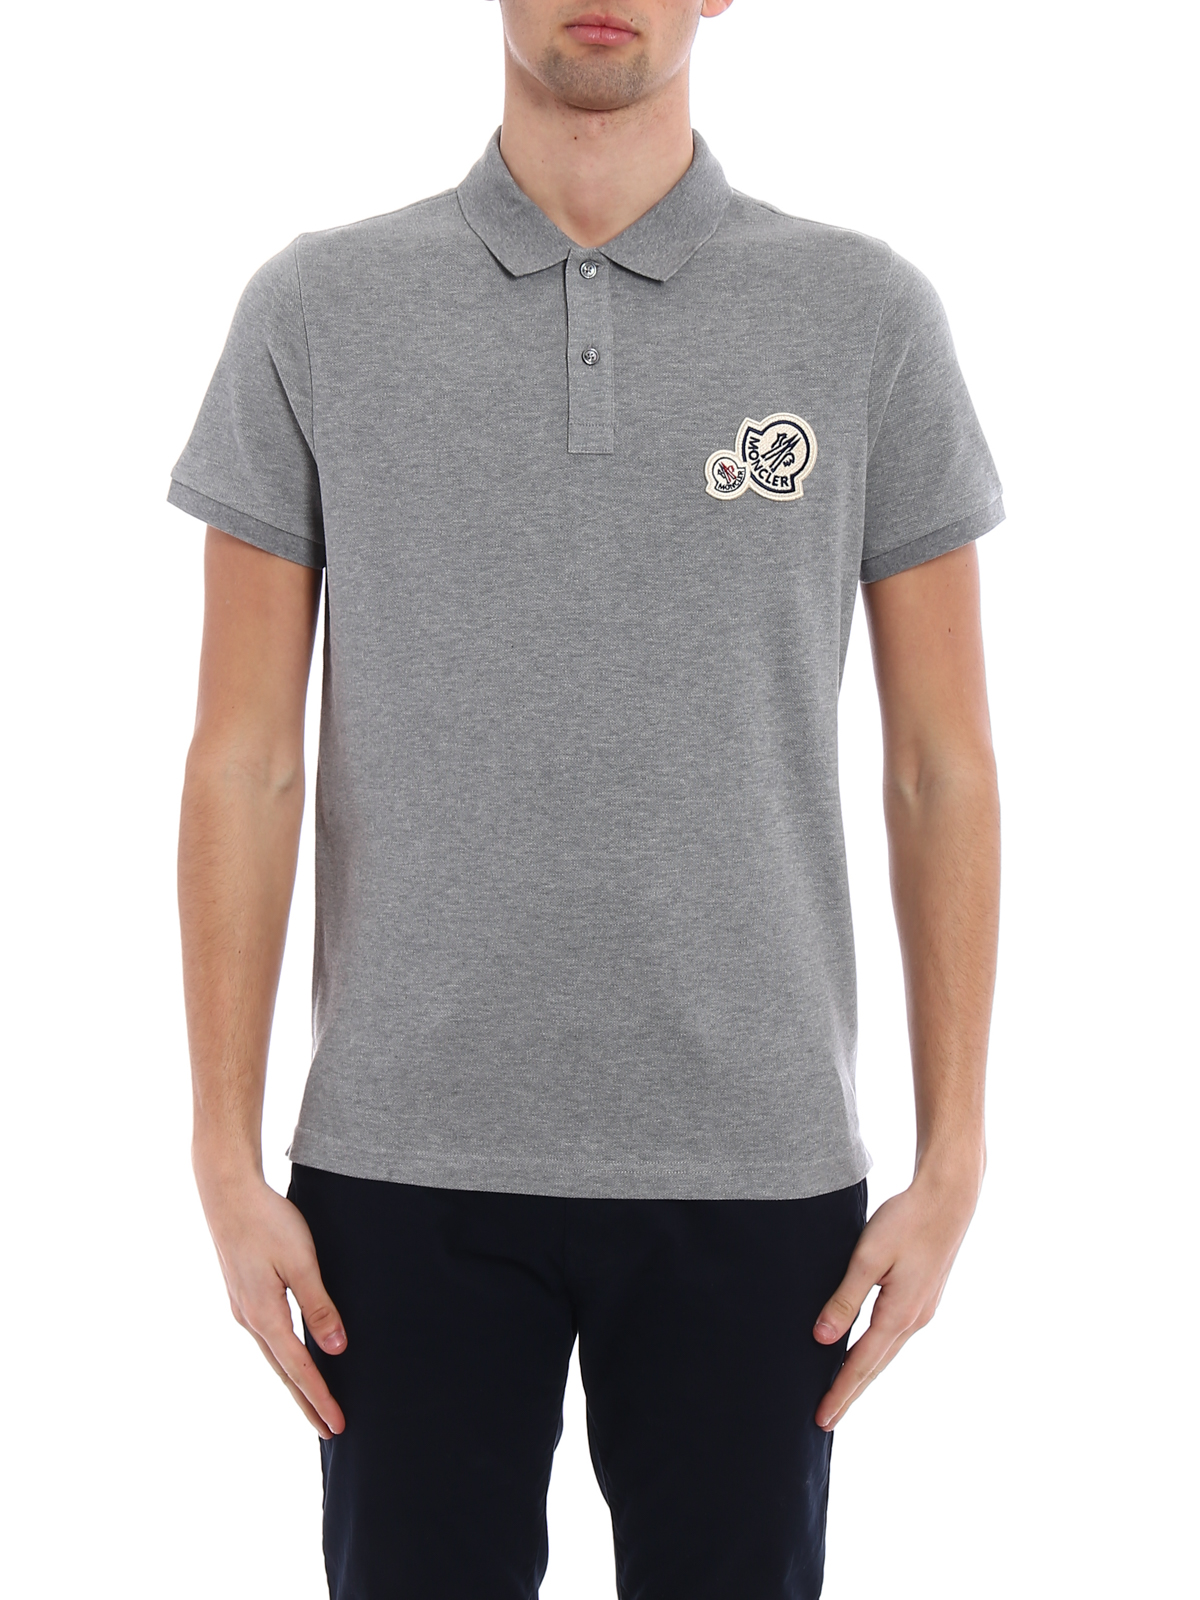 3ae96837e online here b54a6 01aa3 moncler polo shirts online logo patch grey ...